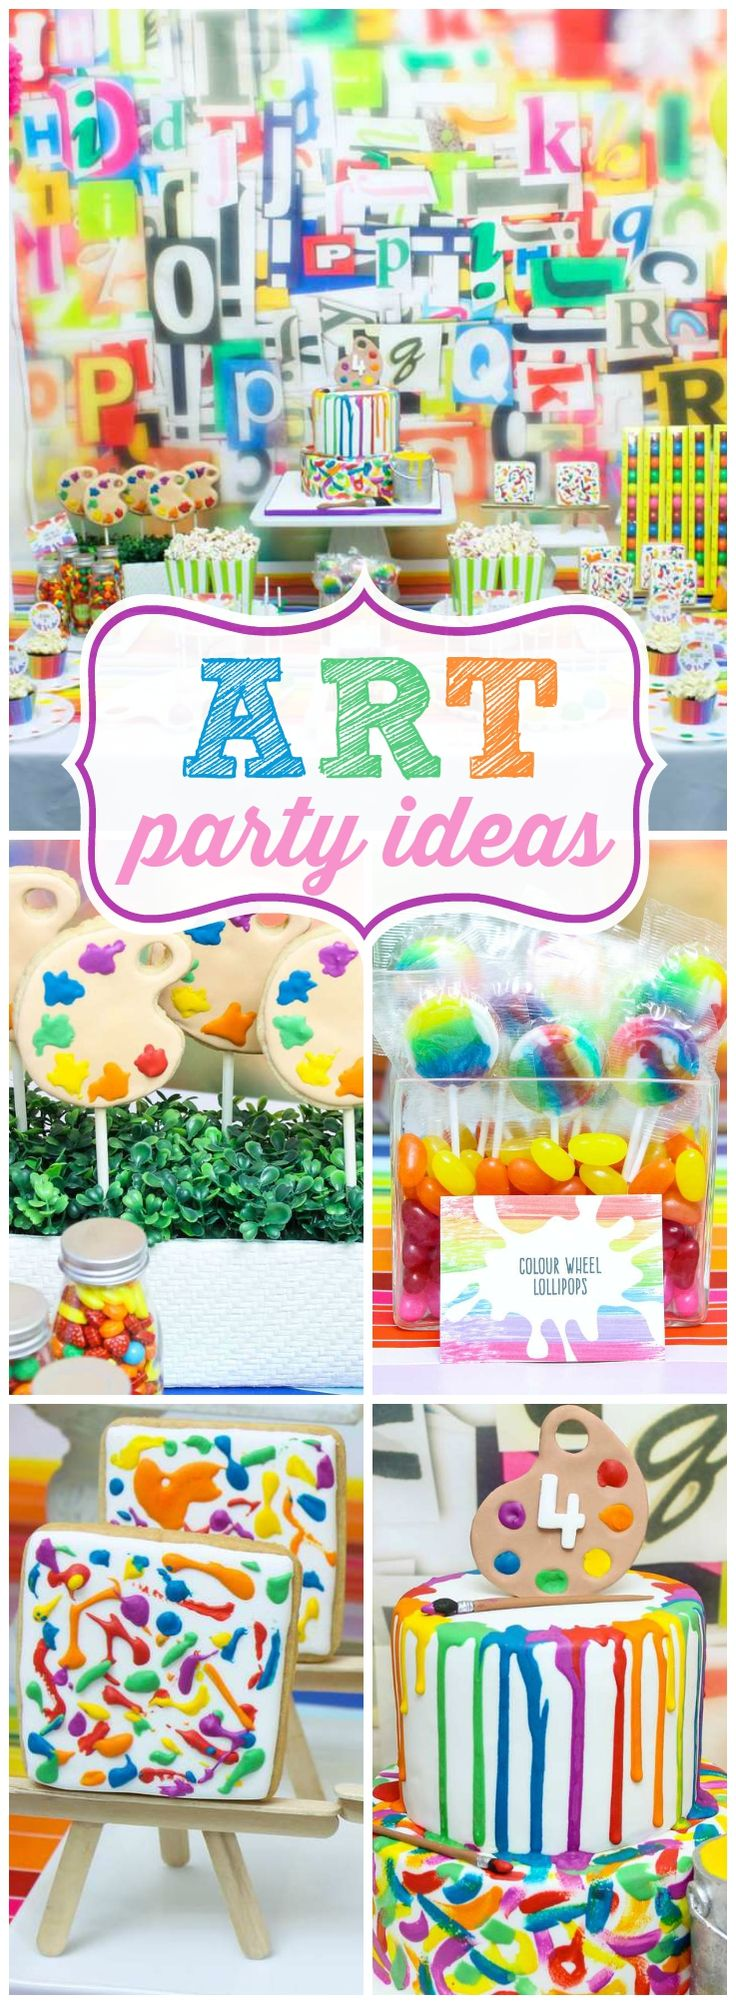 Best 25 Art Birthday Parties Ideas On Pinterest Art Party intended for craft ideas 2 year old birthday party with regard to Fantasy